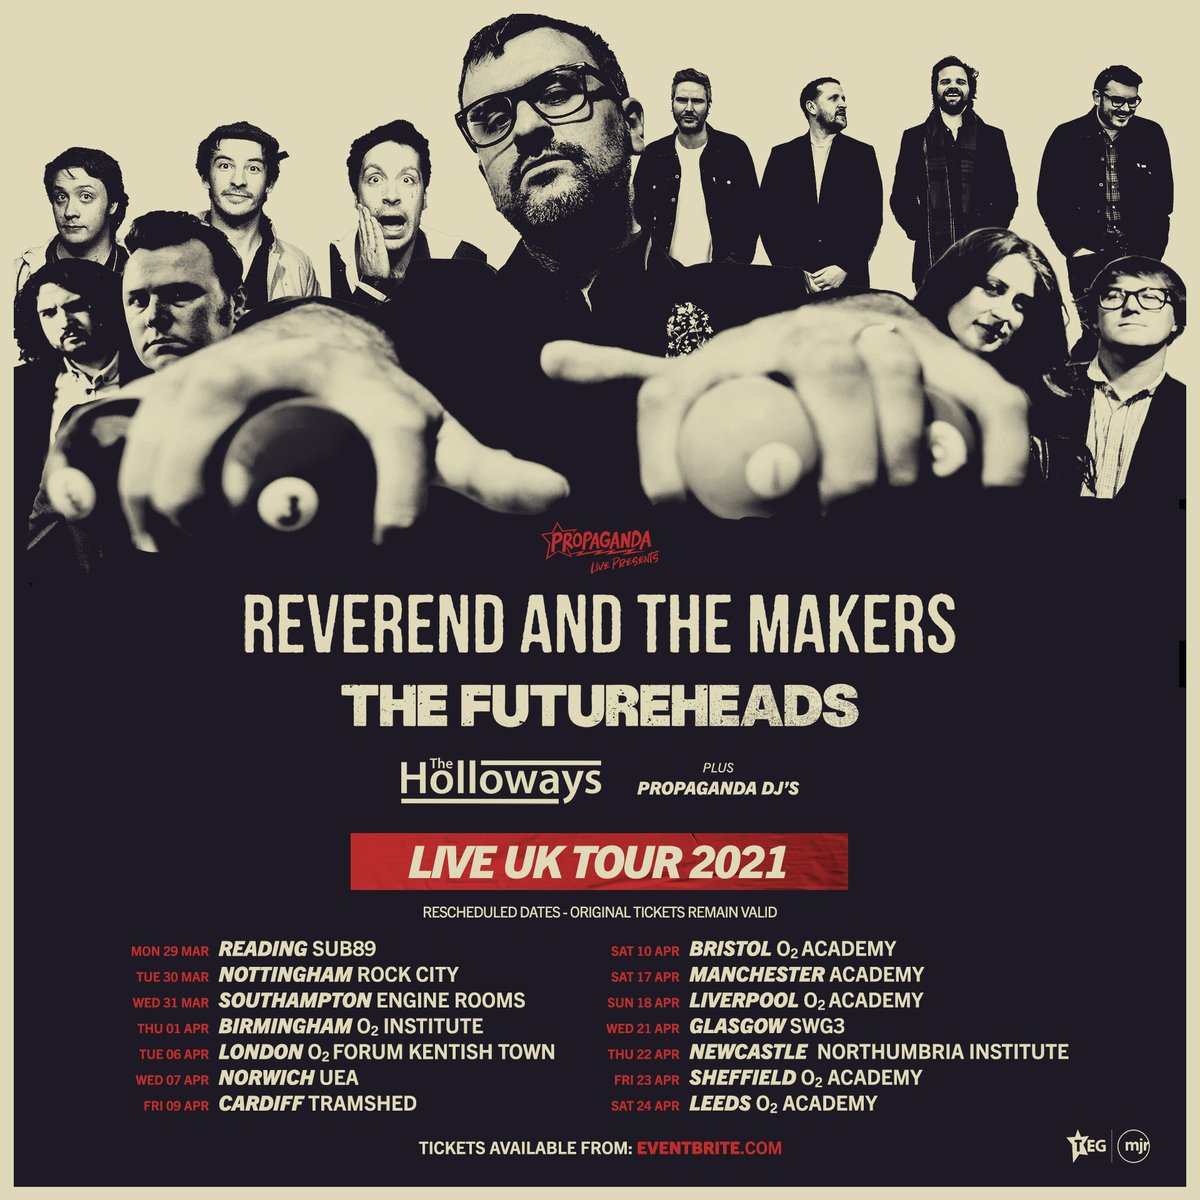 RESCHEDULED DATES |  Due to the ongoing COVID-19 situation, we have decided to move the Propaganda Live Tour with @Reverend_Makers, @thefutureheads & @The_Holloways to 2021!  All tickets remain valid for these new dates. Tickets available here - https://t.co/T1EQ1GkaSk https://t.co/8YRxo14HCa